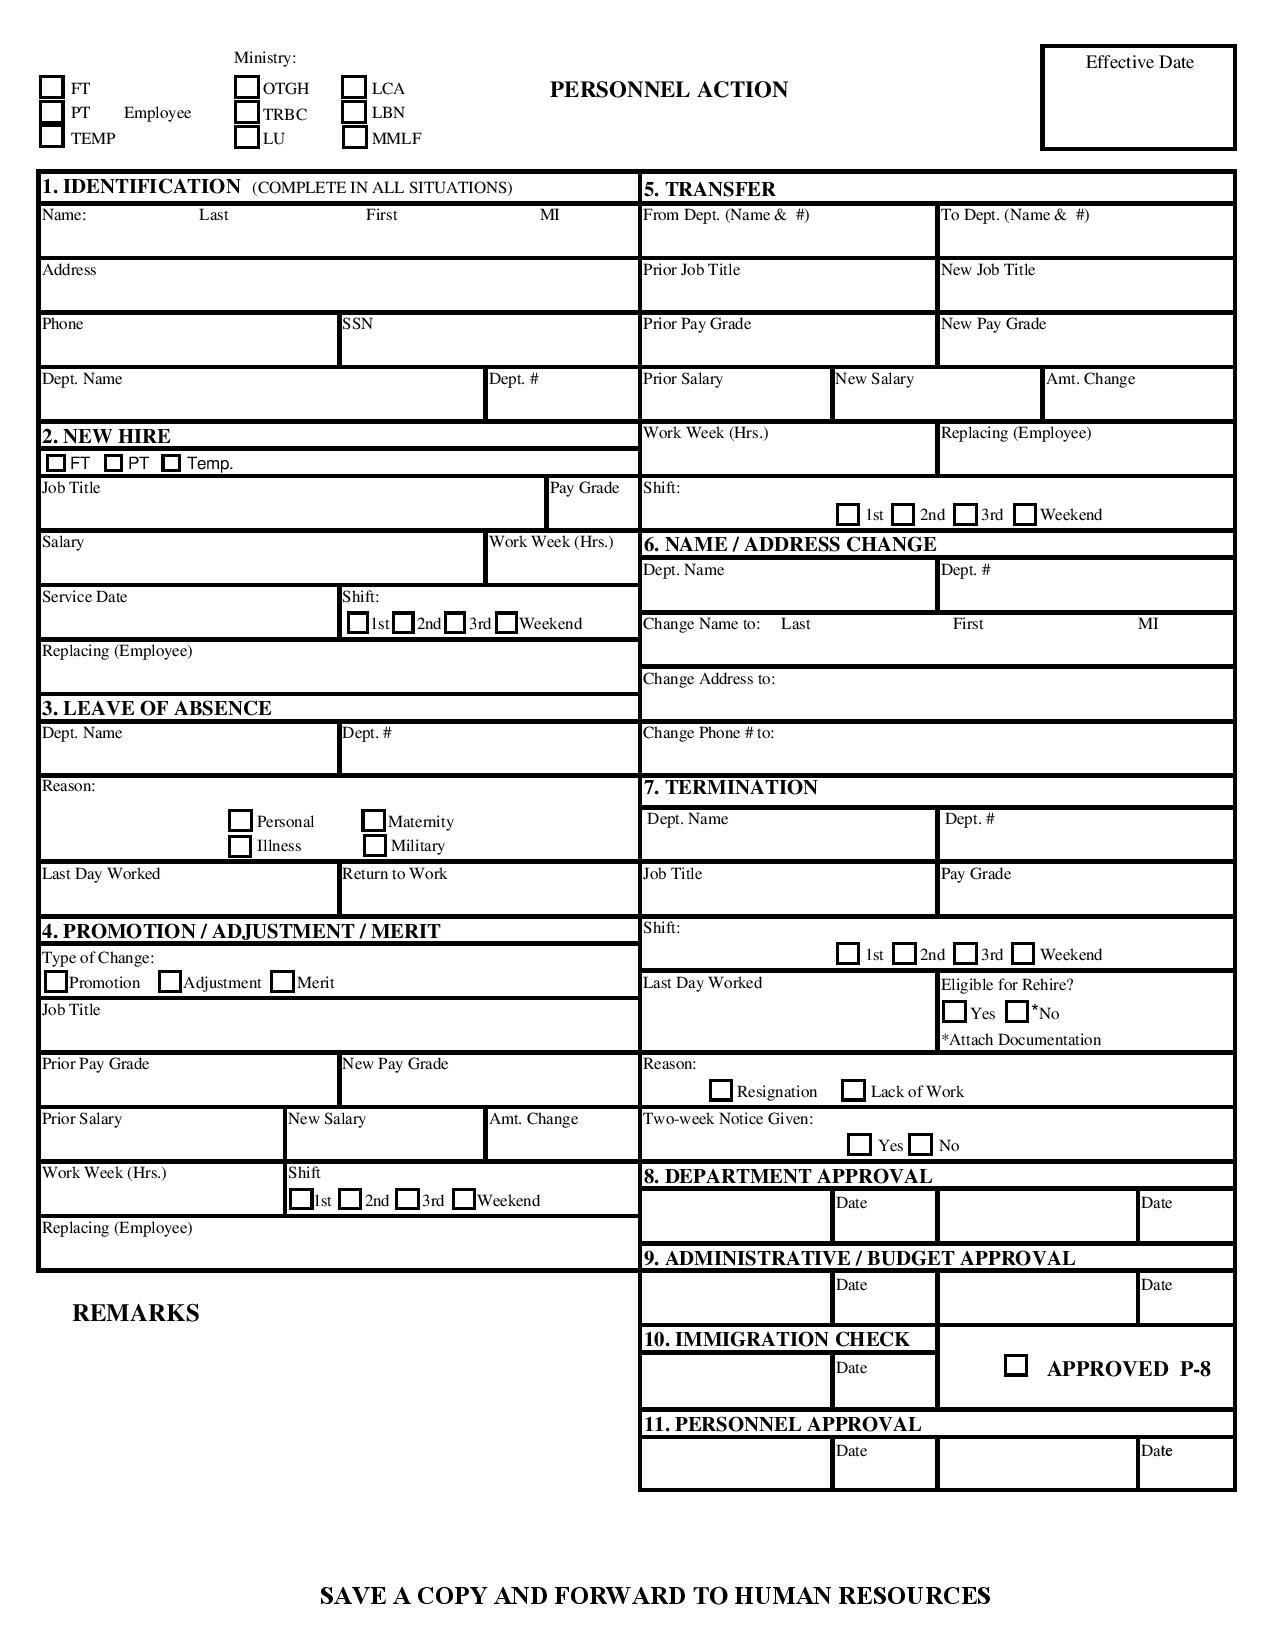 human resource personnel action form page 0012